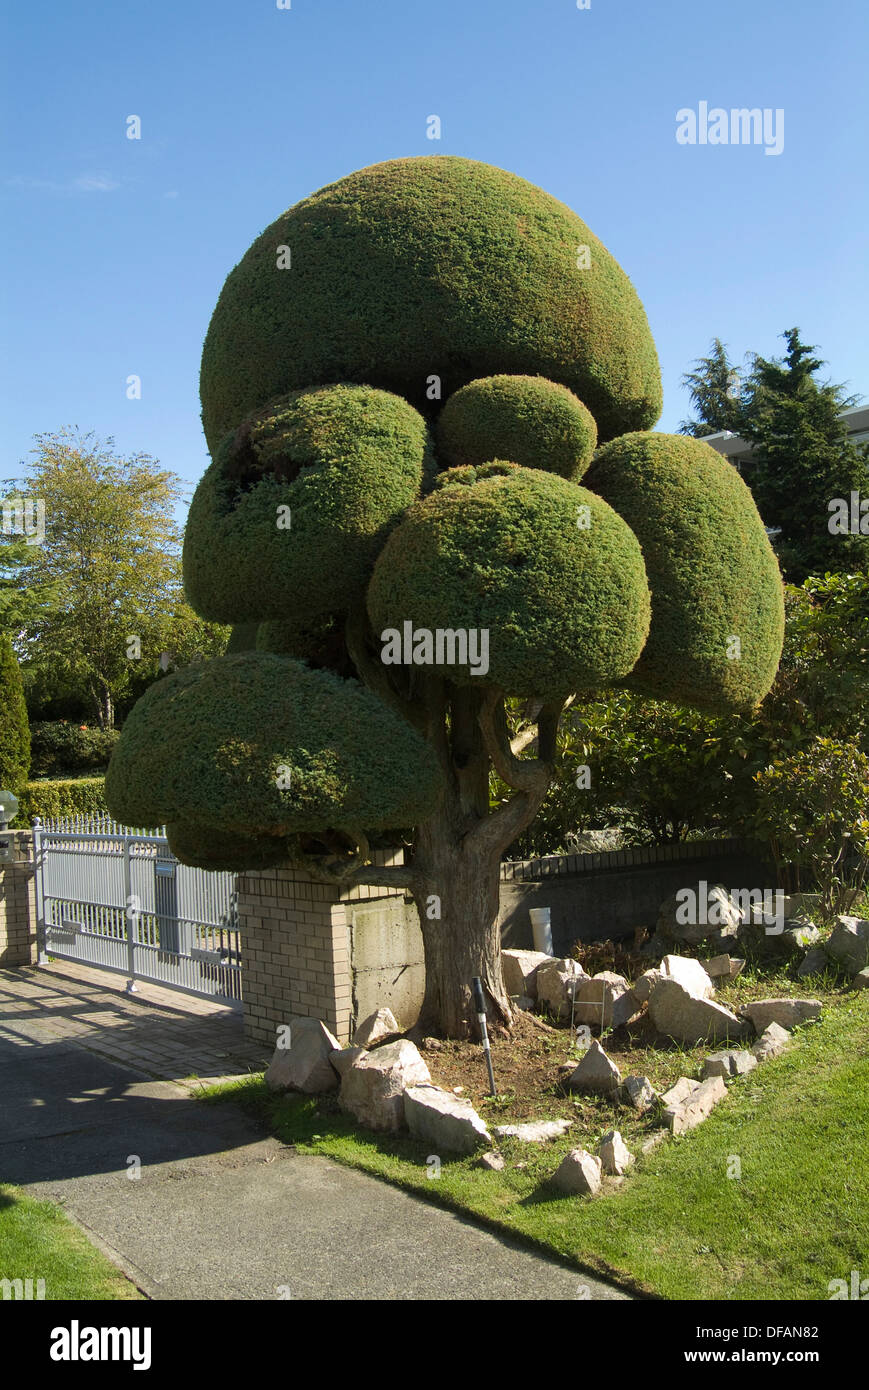 Carefully trimmed tree, Vancouver, British Columbia, Canada - Stock Image